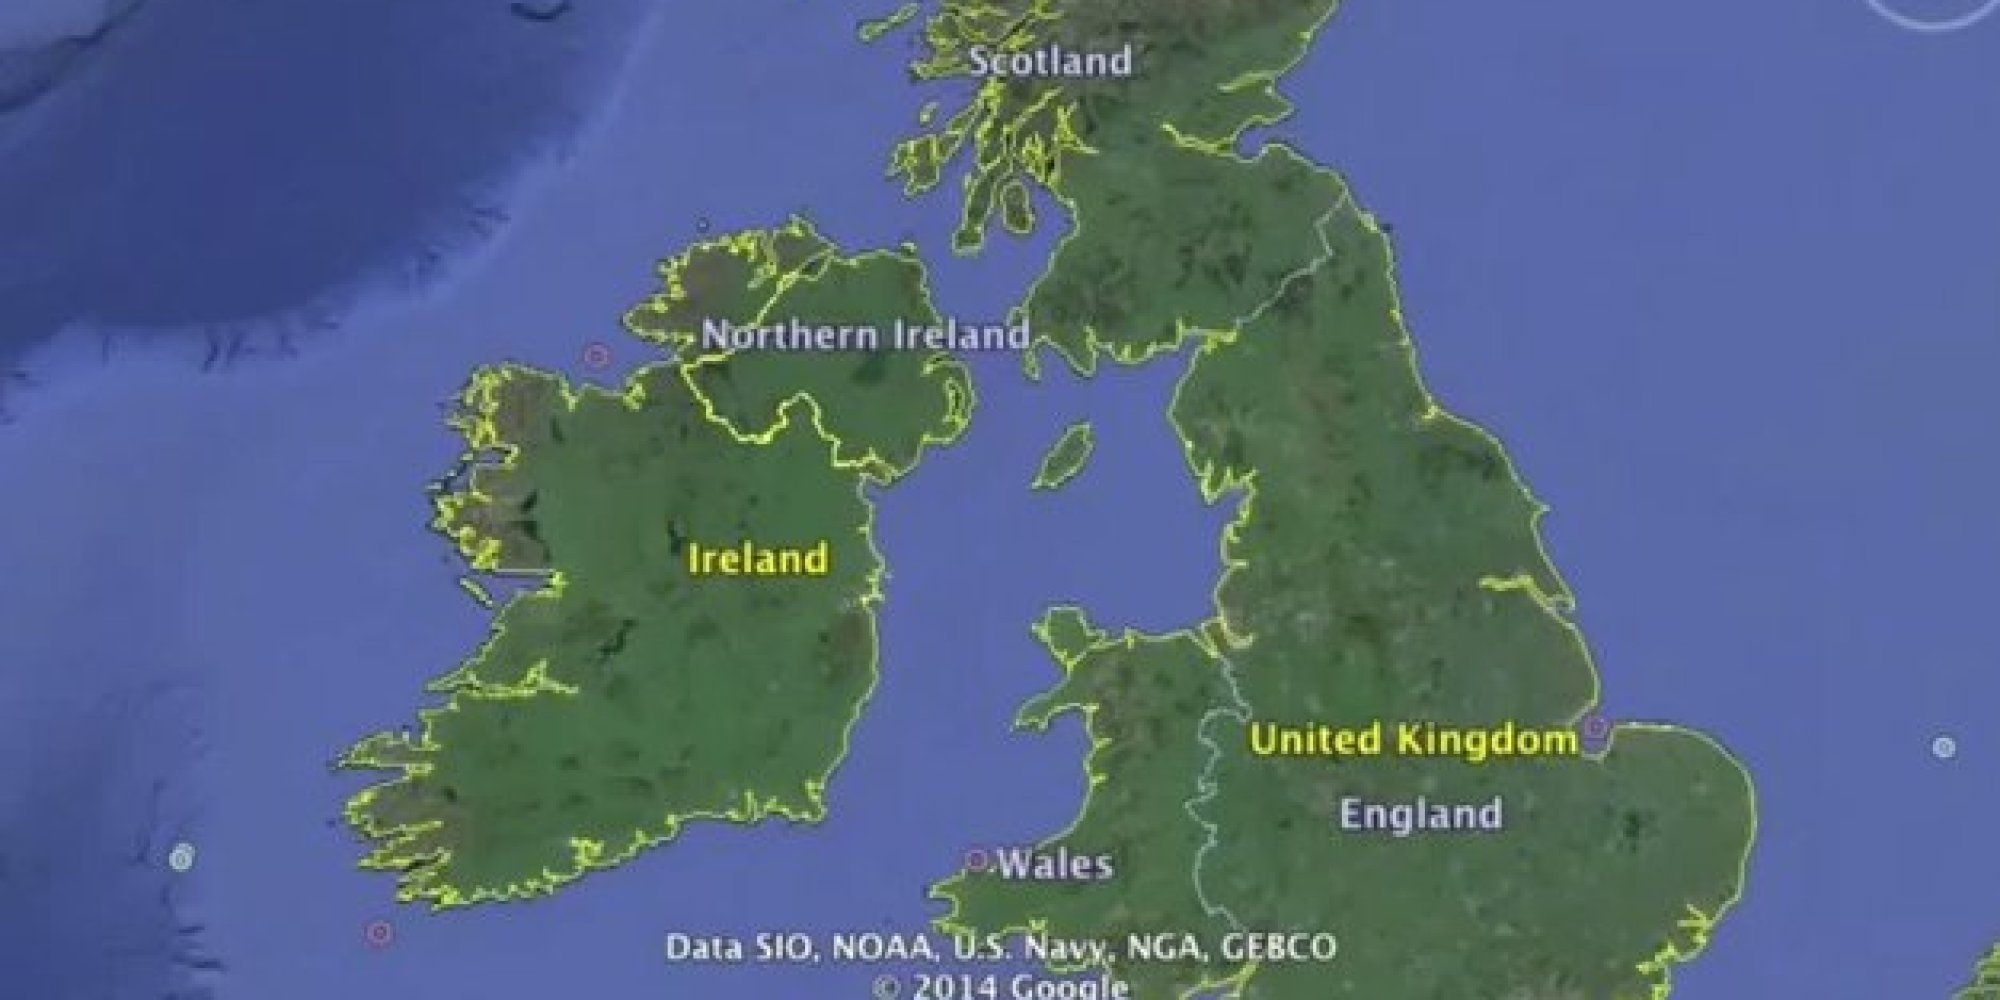 British Isles: A Whistle-Stop Tour Of The British Isles